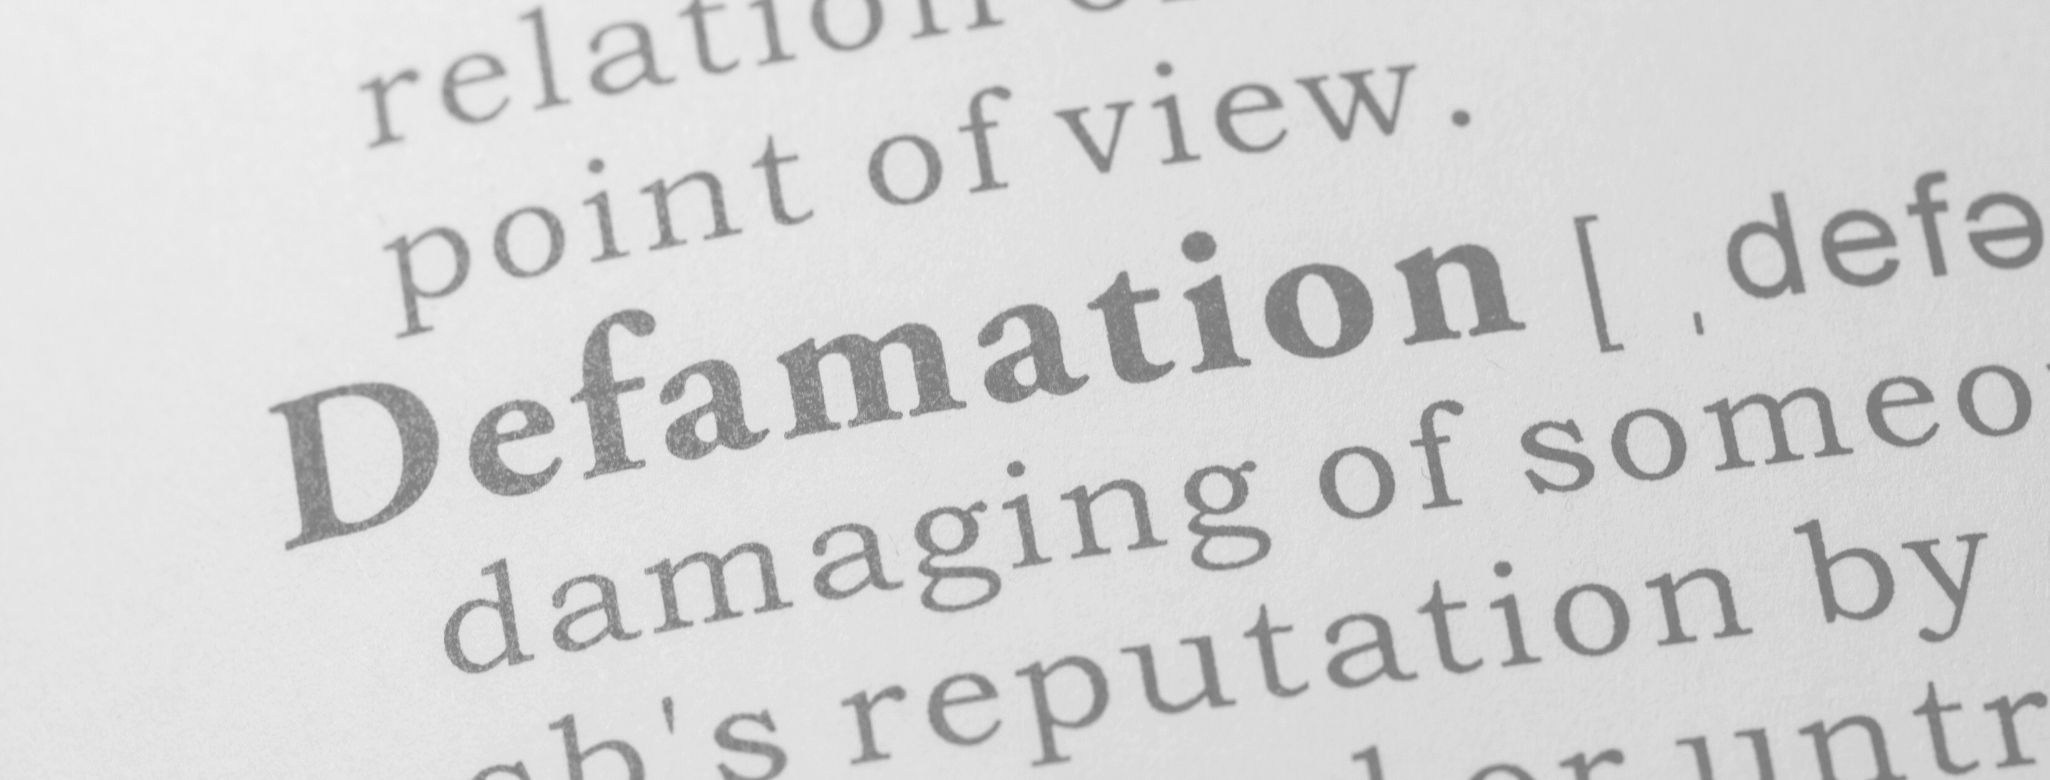 Successful Defamation Outcomes - definition